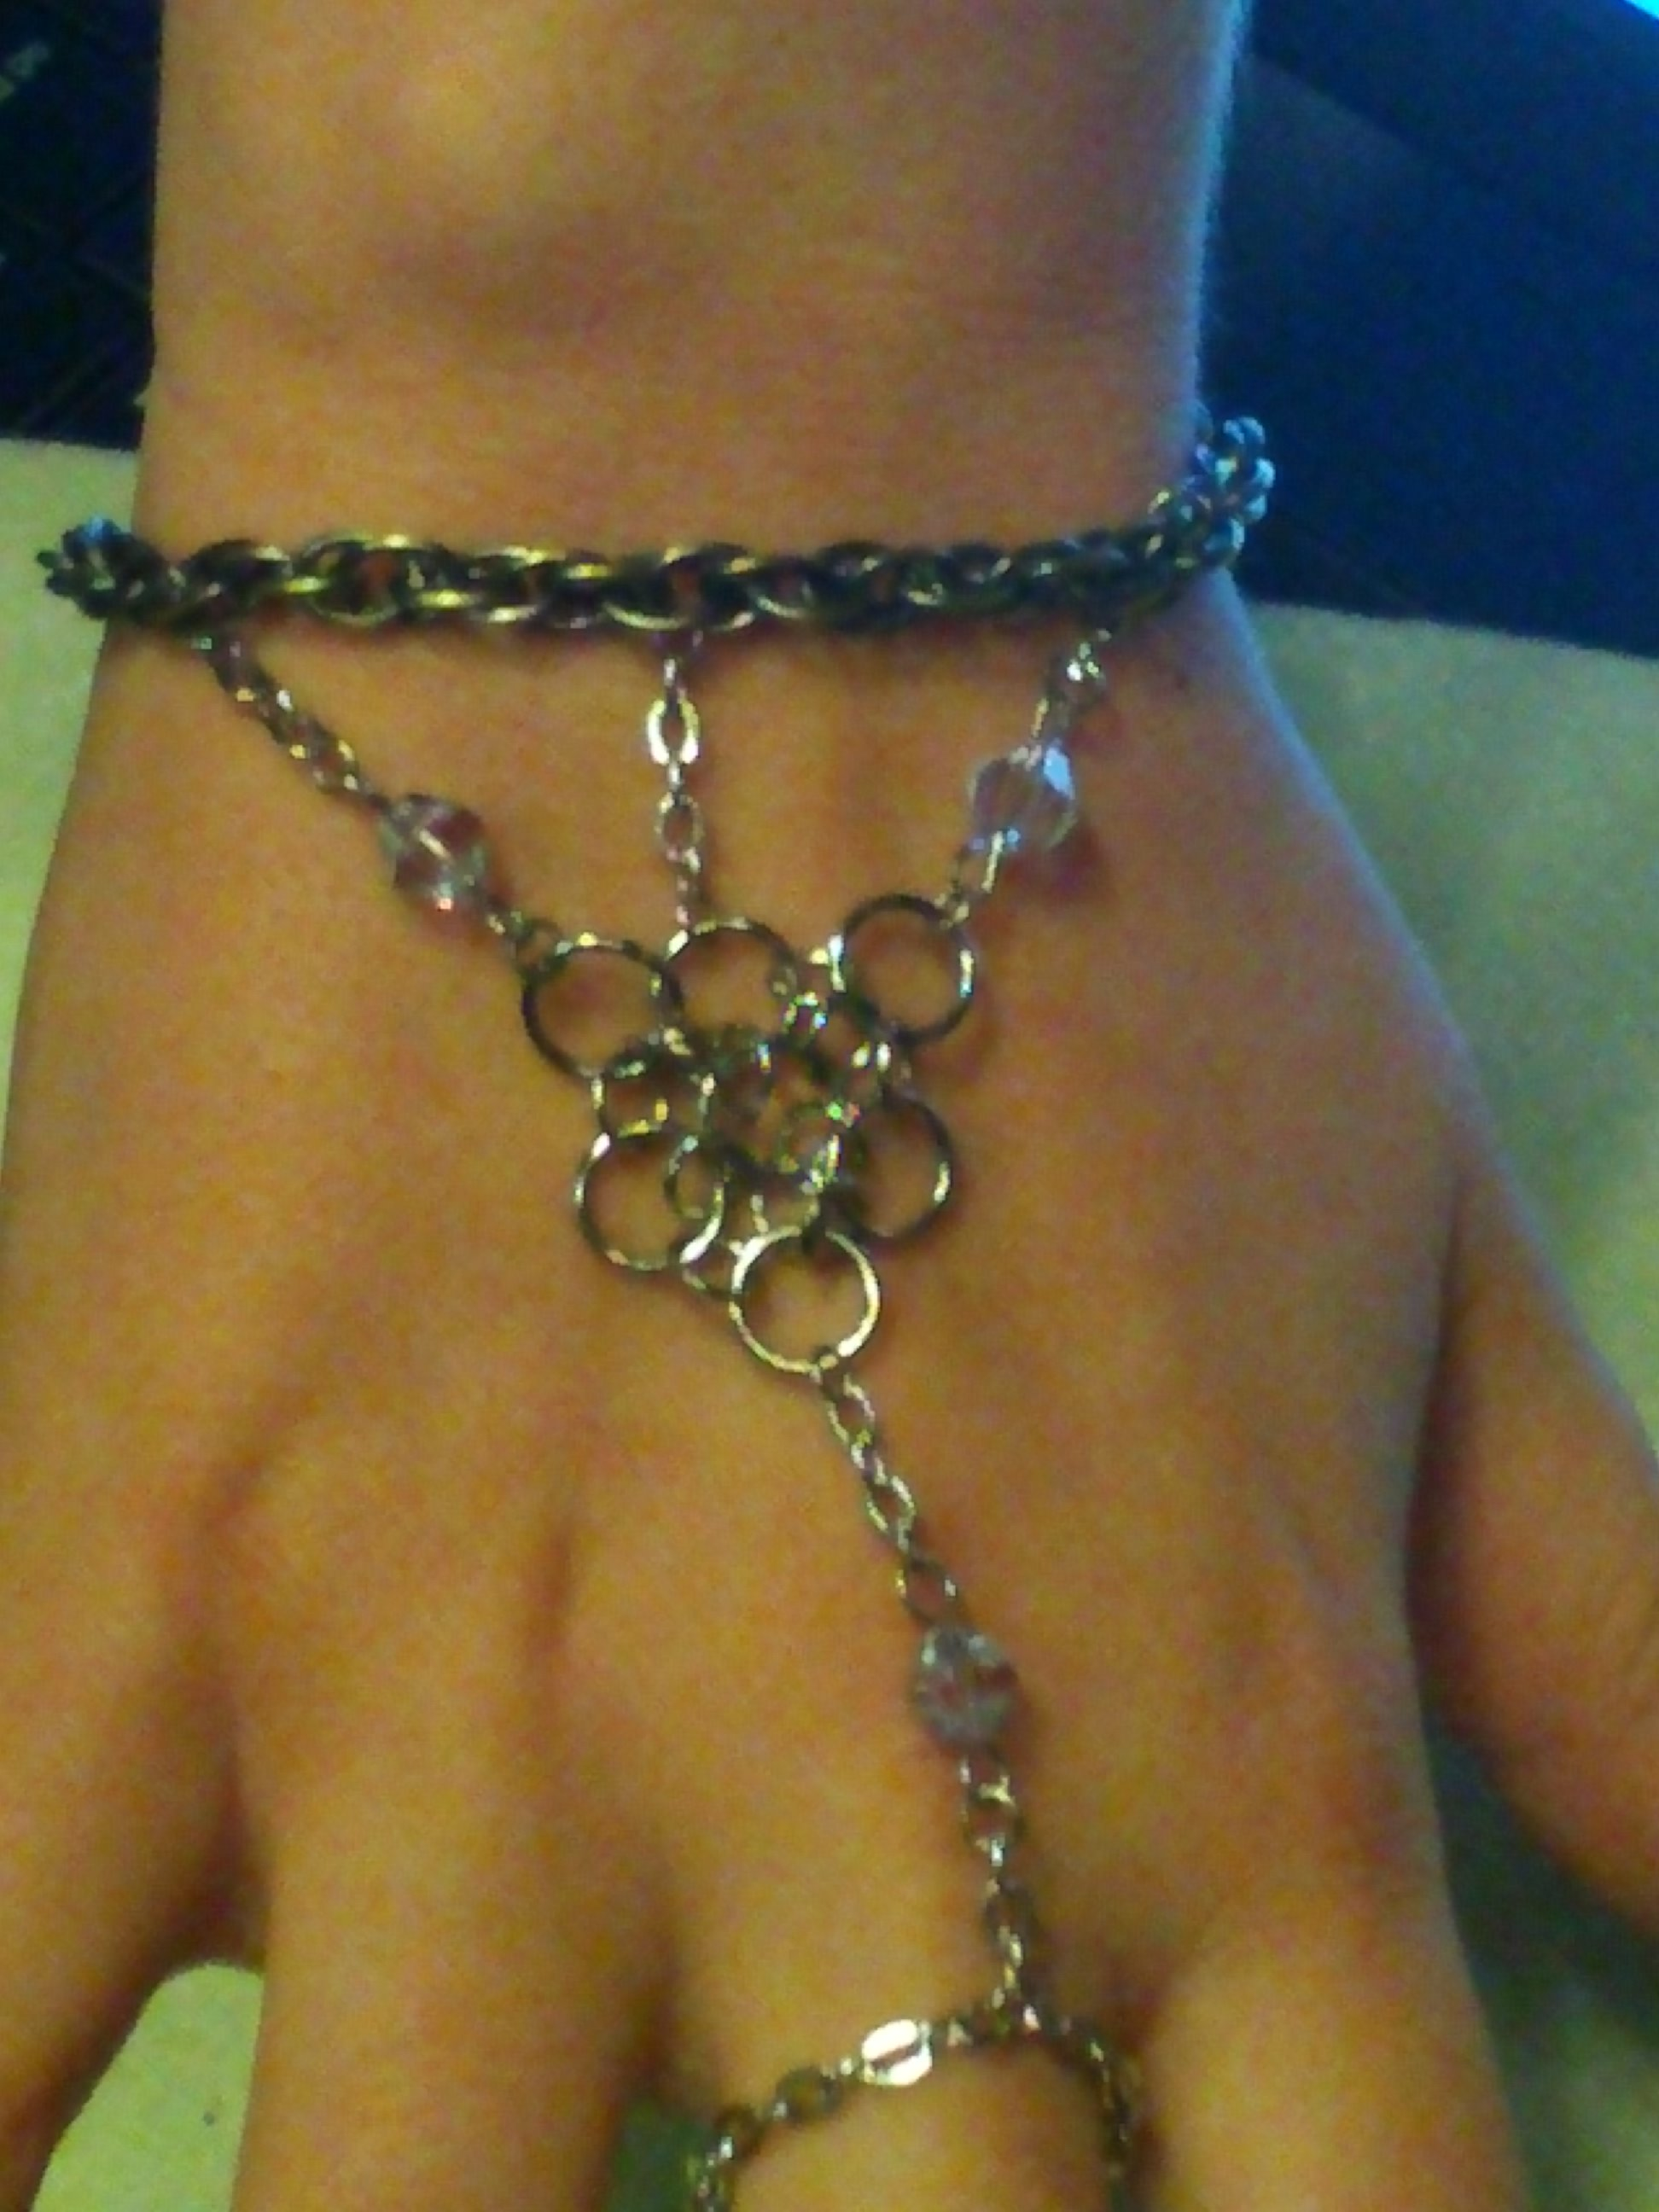 How to Make a Bracelet W/ Ring Attached